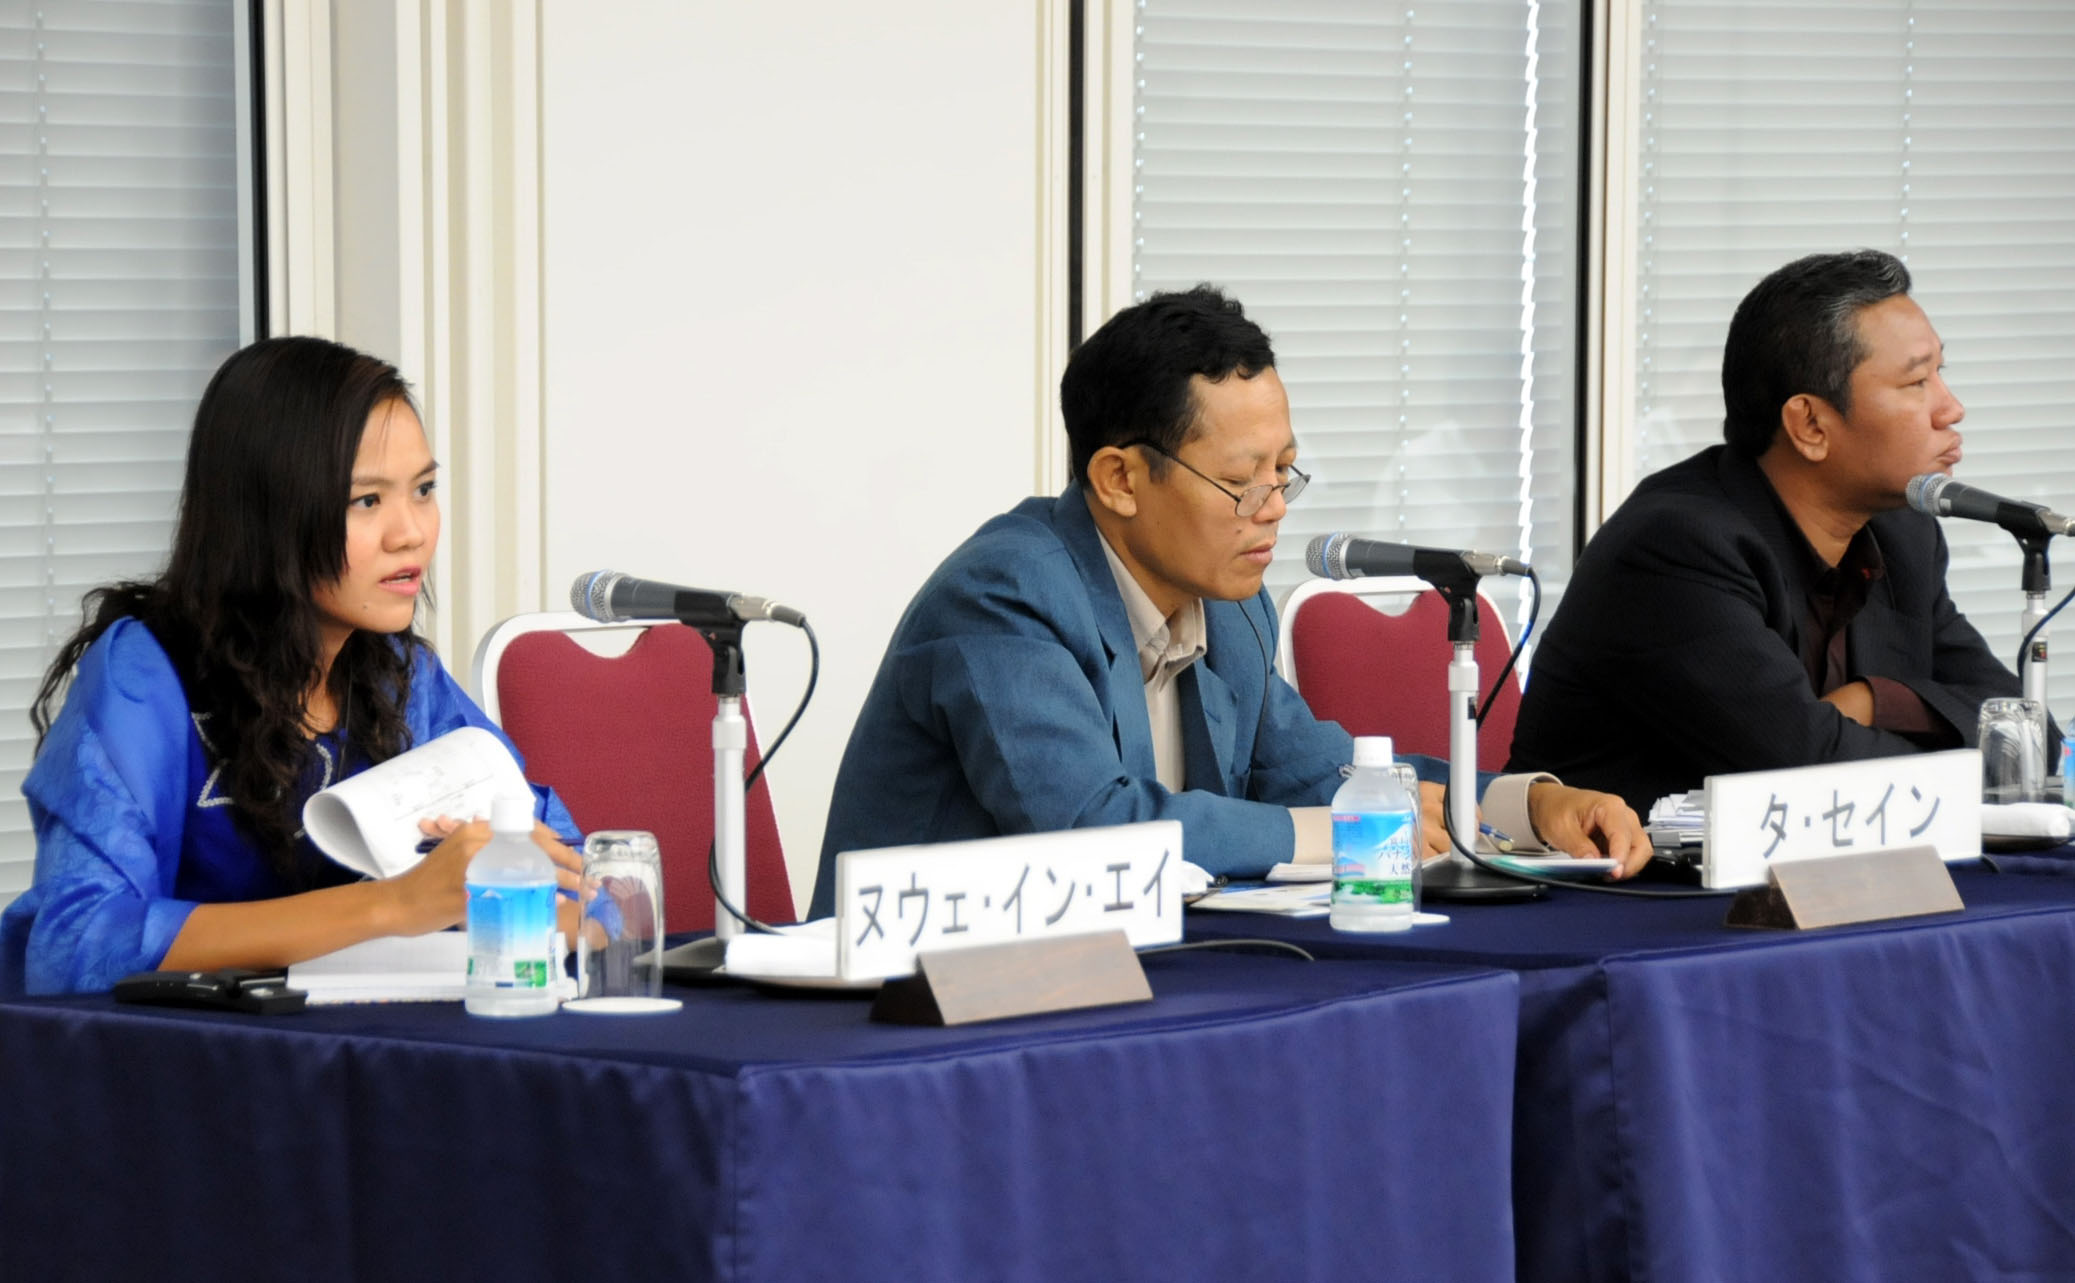 Myanmar journalists (from left) Nwe Yin Aye, Tha Sein and Zaw Myint discuss the prospect of the country's reforms during an Aug. 1 seminar in Tokyo. | SATOKO KAWASAKI